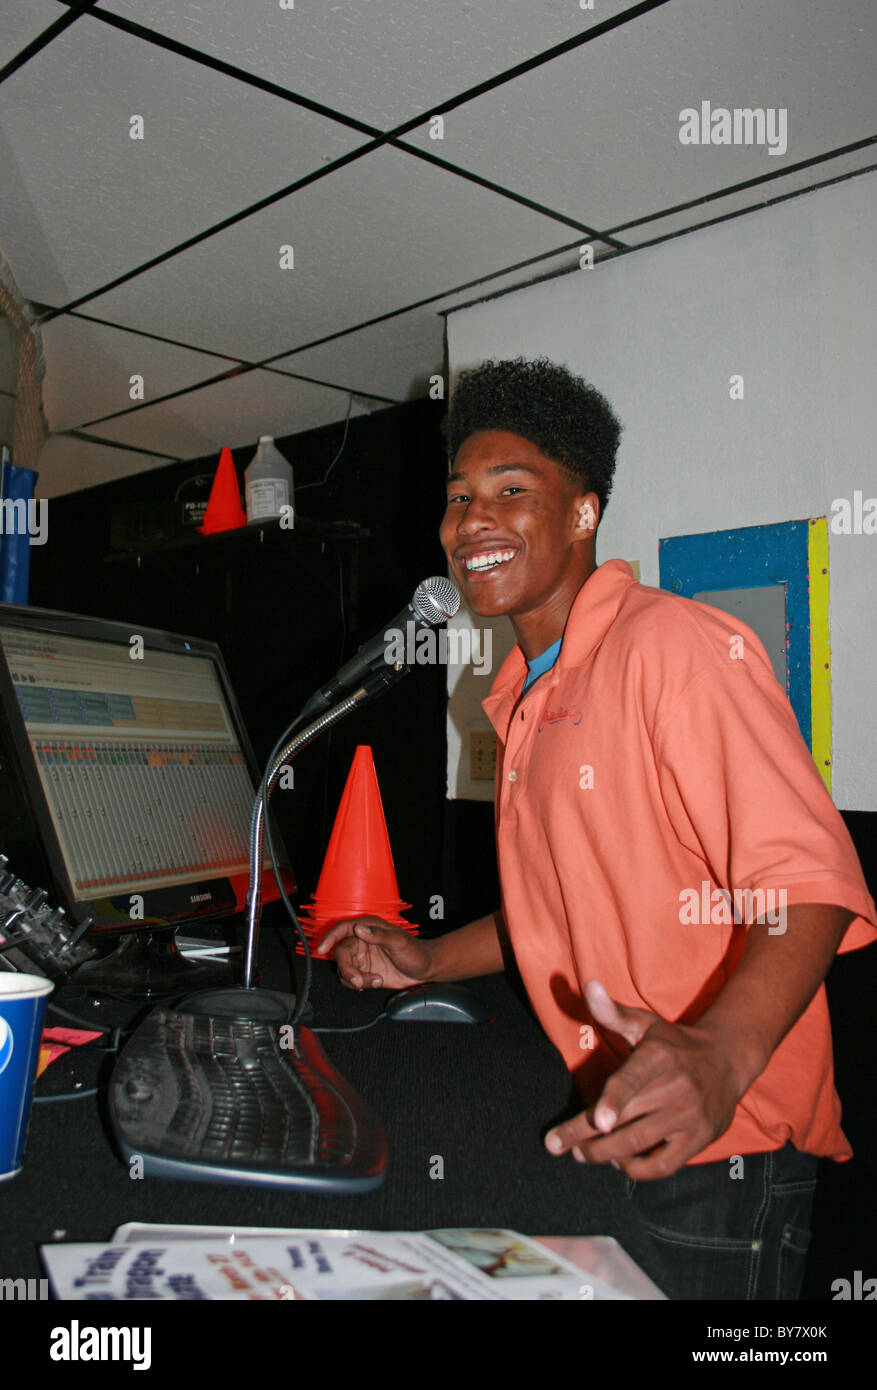 Teenager with an Eighties haircut DJing at a rollerskating rink. - Stock Image